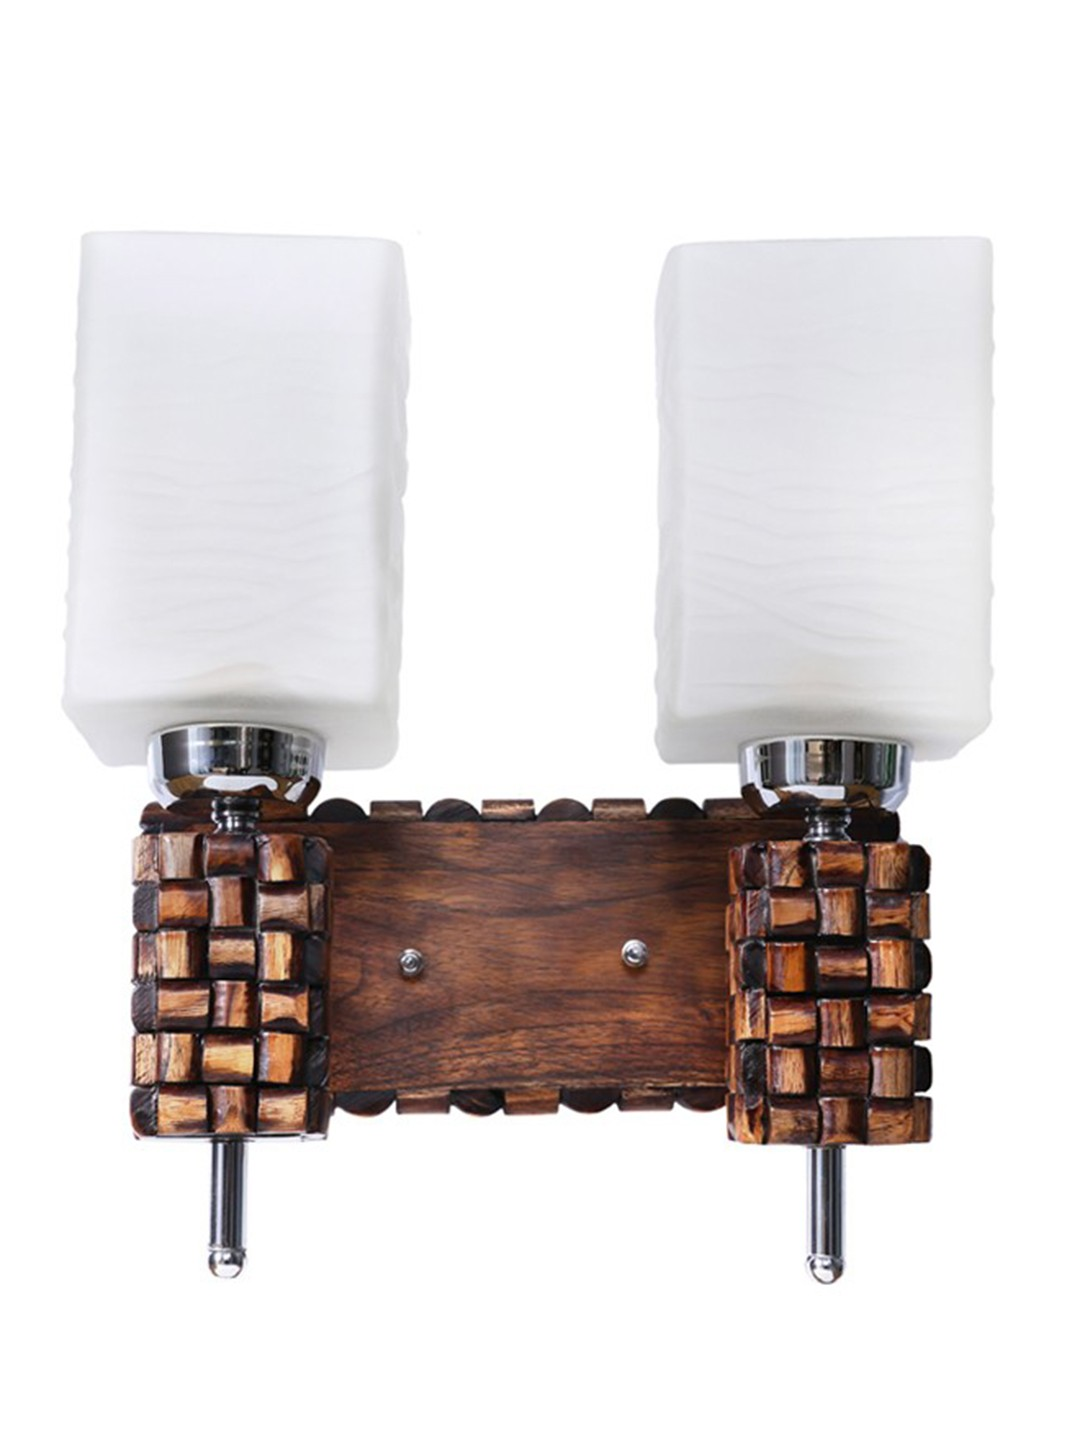 Rolex Square Double Wall Light